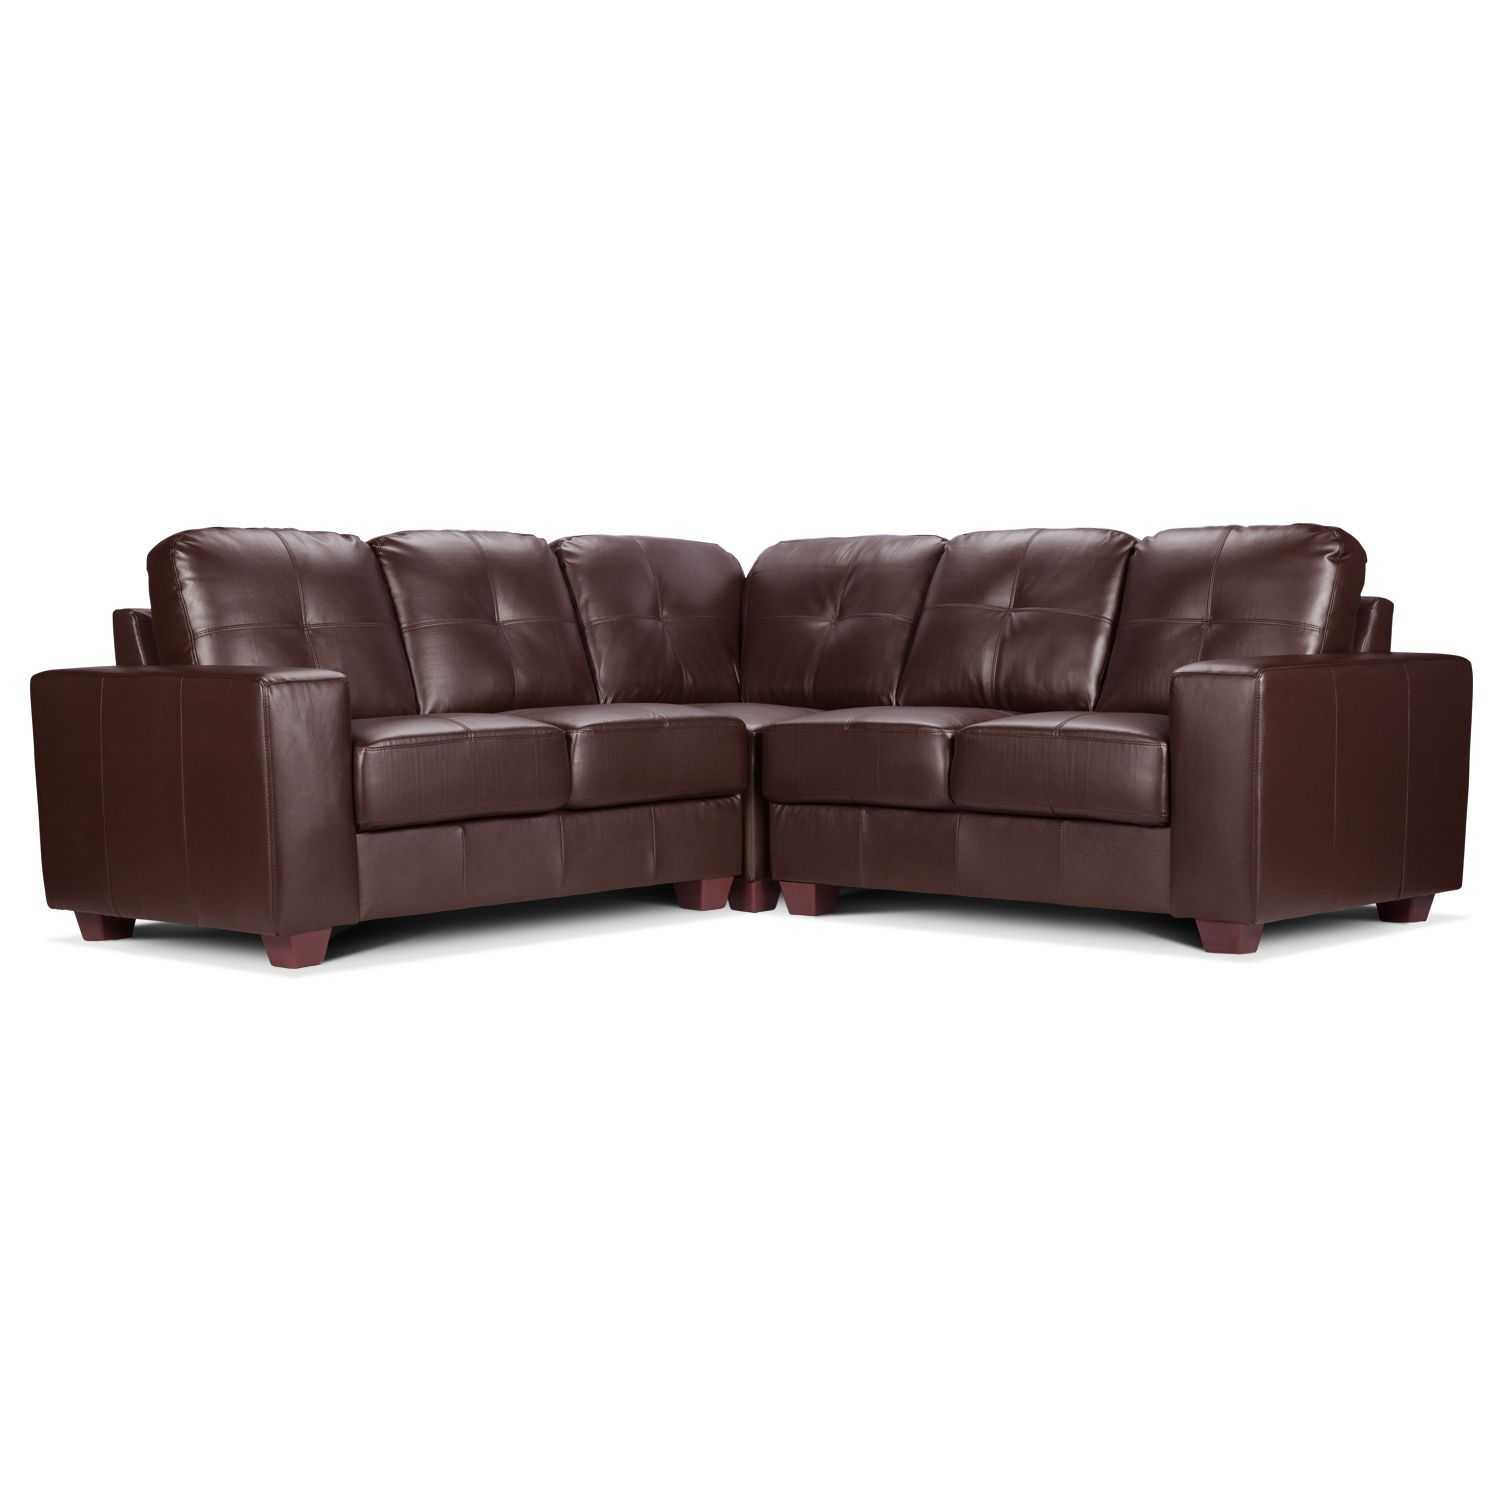 Terrific Roma Corner Leather Sofa Next Day Delivery Roma Corner Pdpeps Interior Chair Design Pdpepsorg